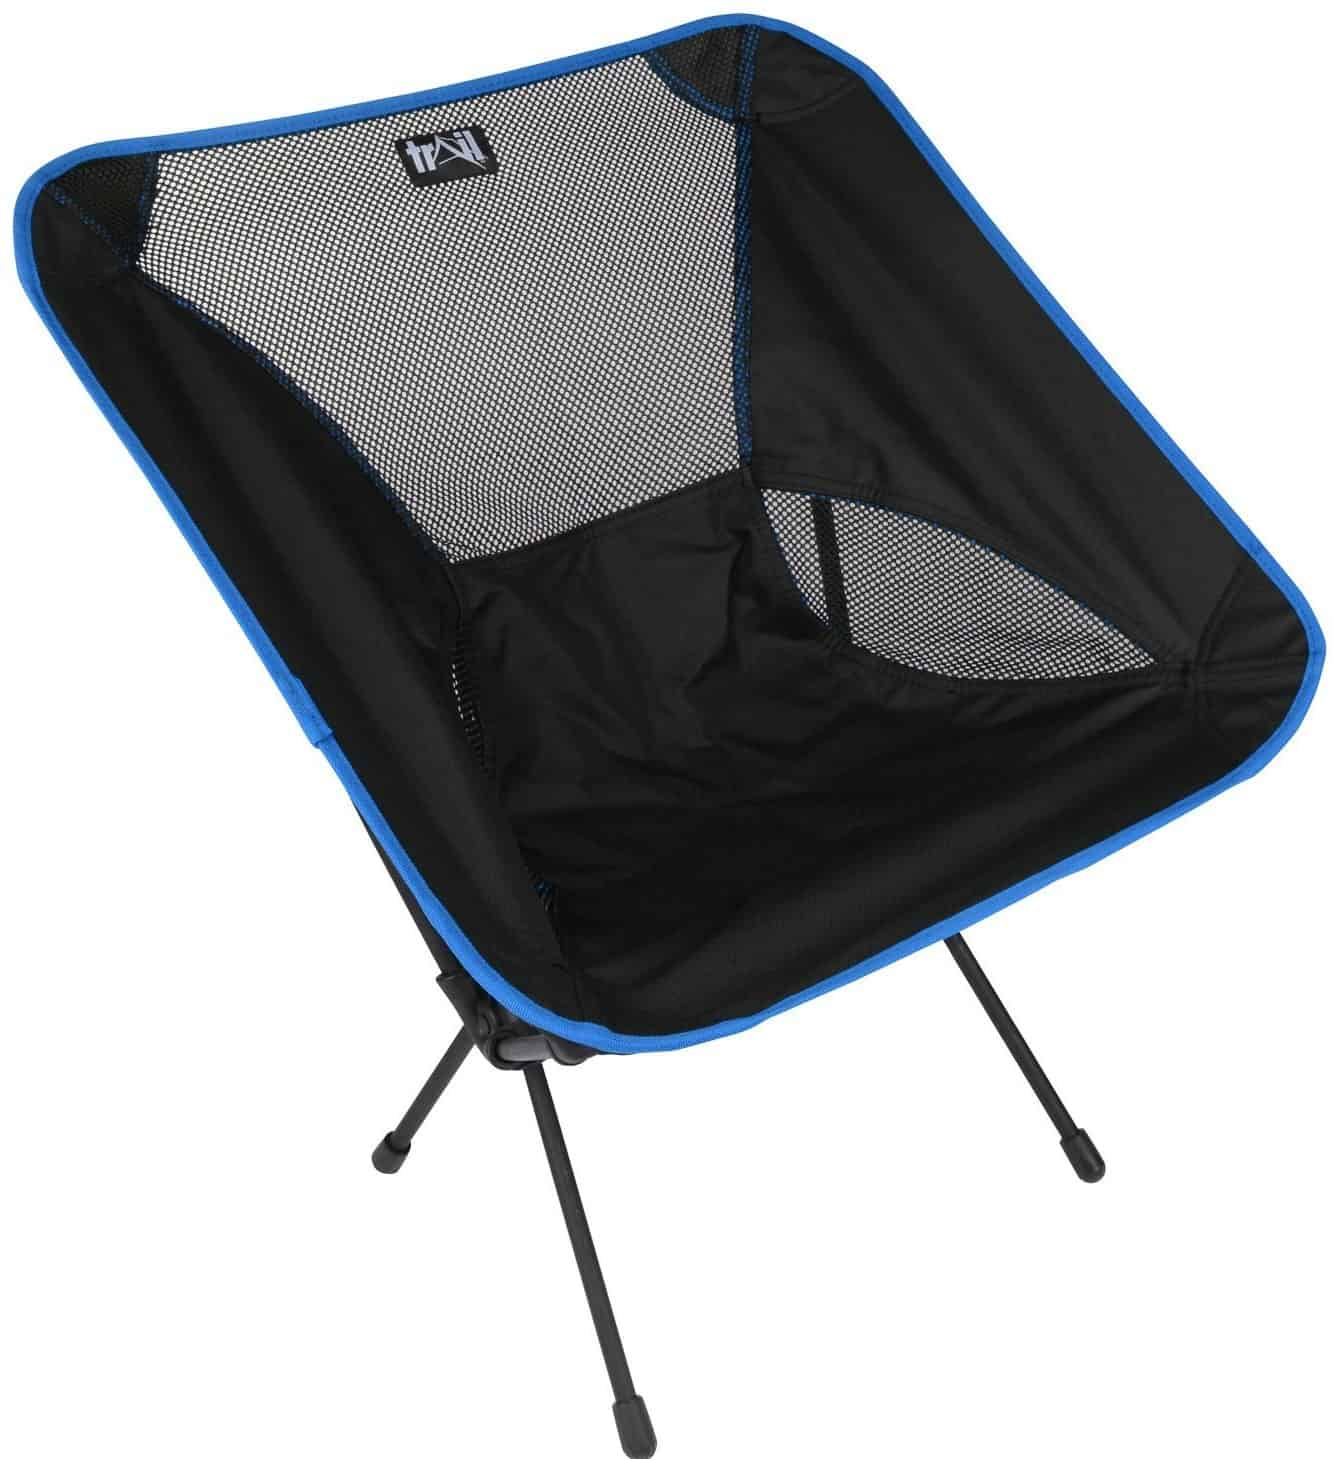 Camping Chair Reviews What are the Best Camping Chairs 2017